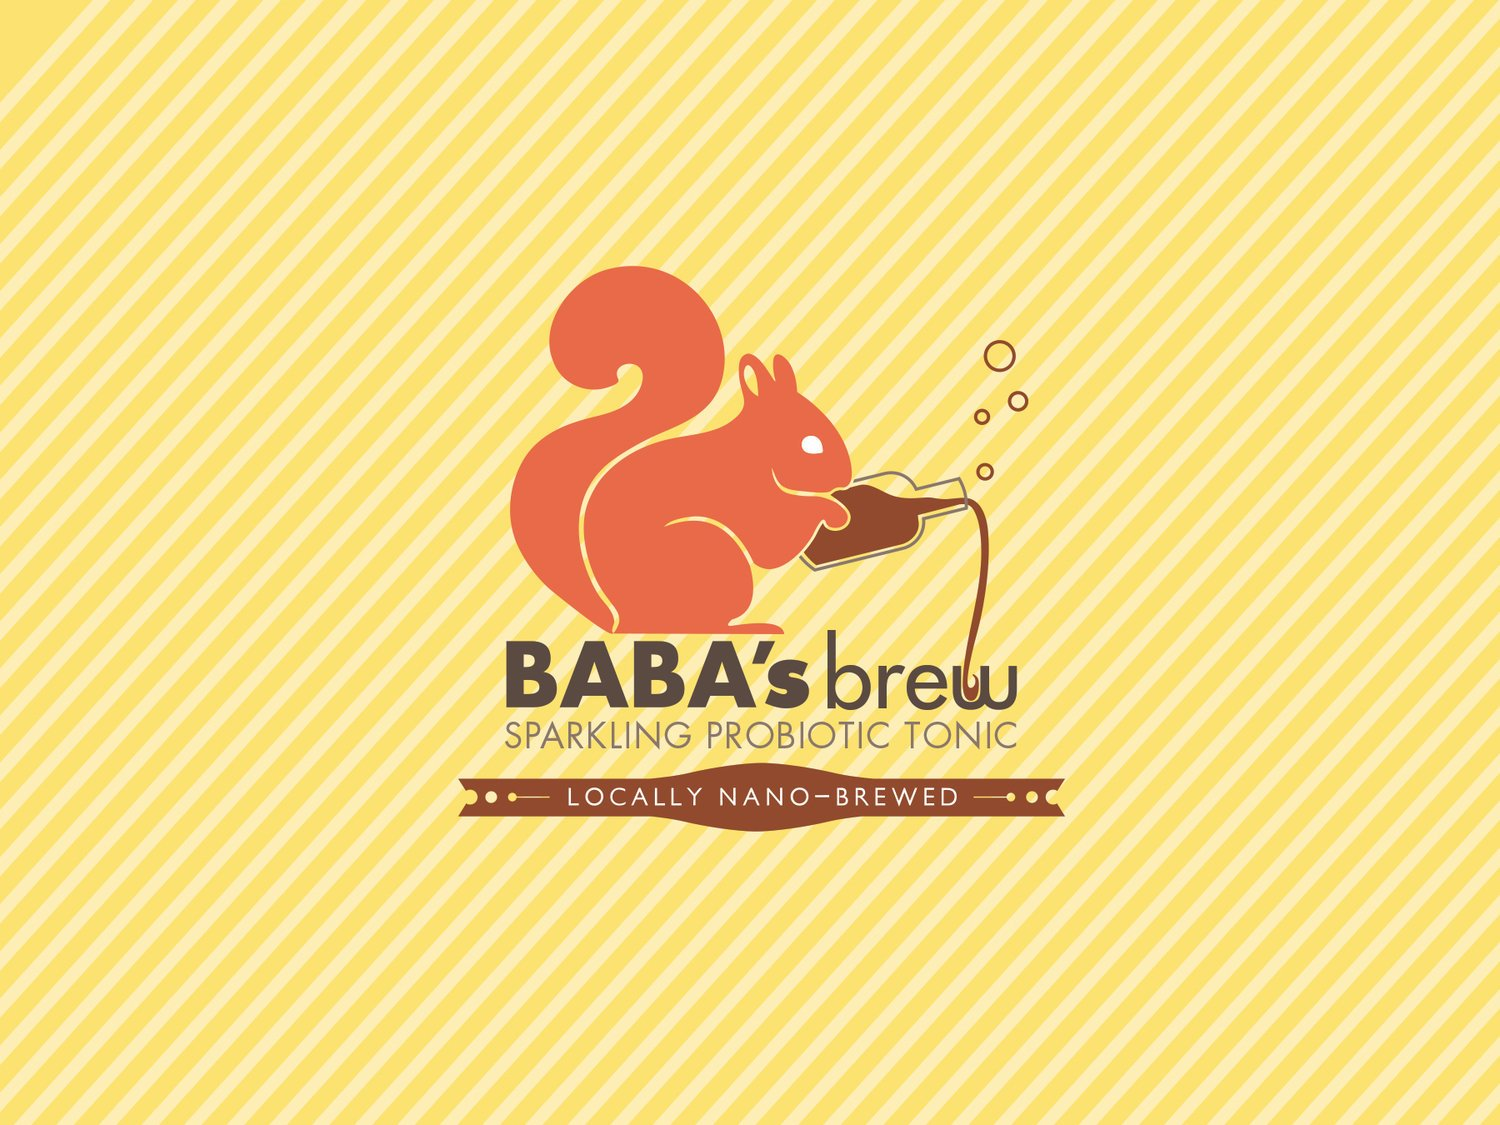 small business saturday philadelphia baba s brew kombucha